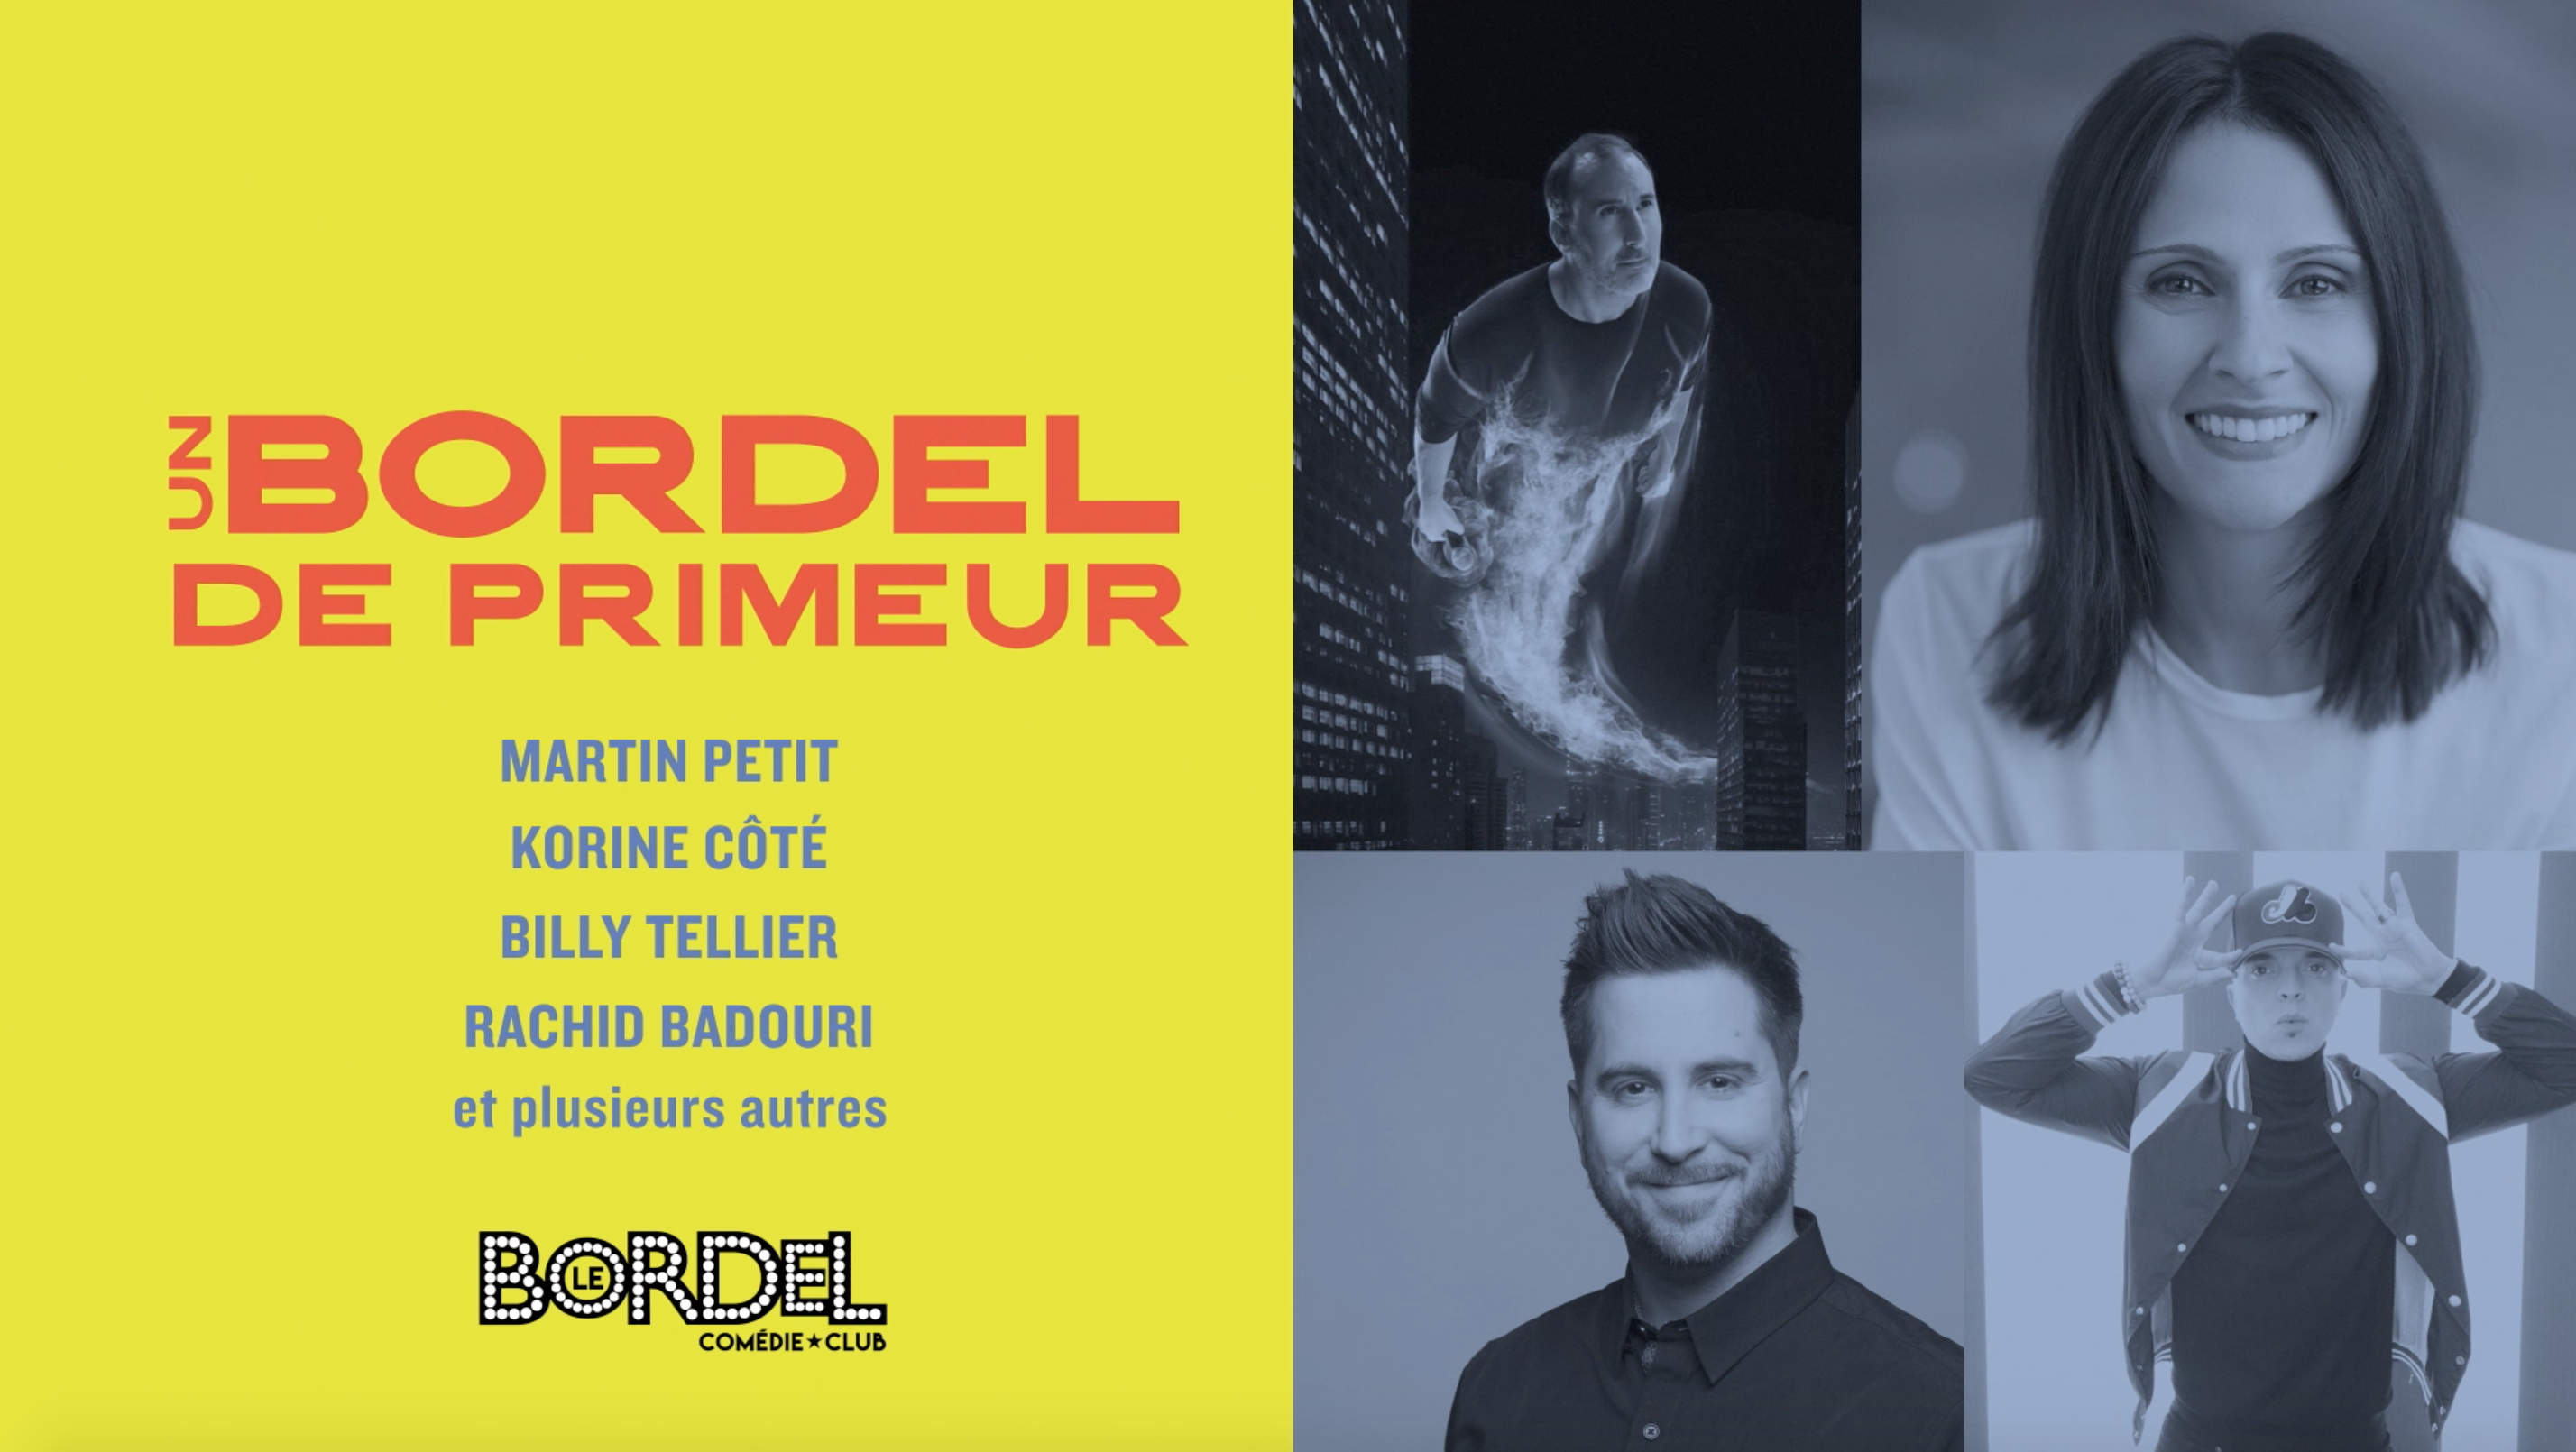 Un Bordel de primeur – Billy Tellier